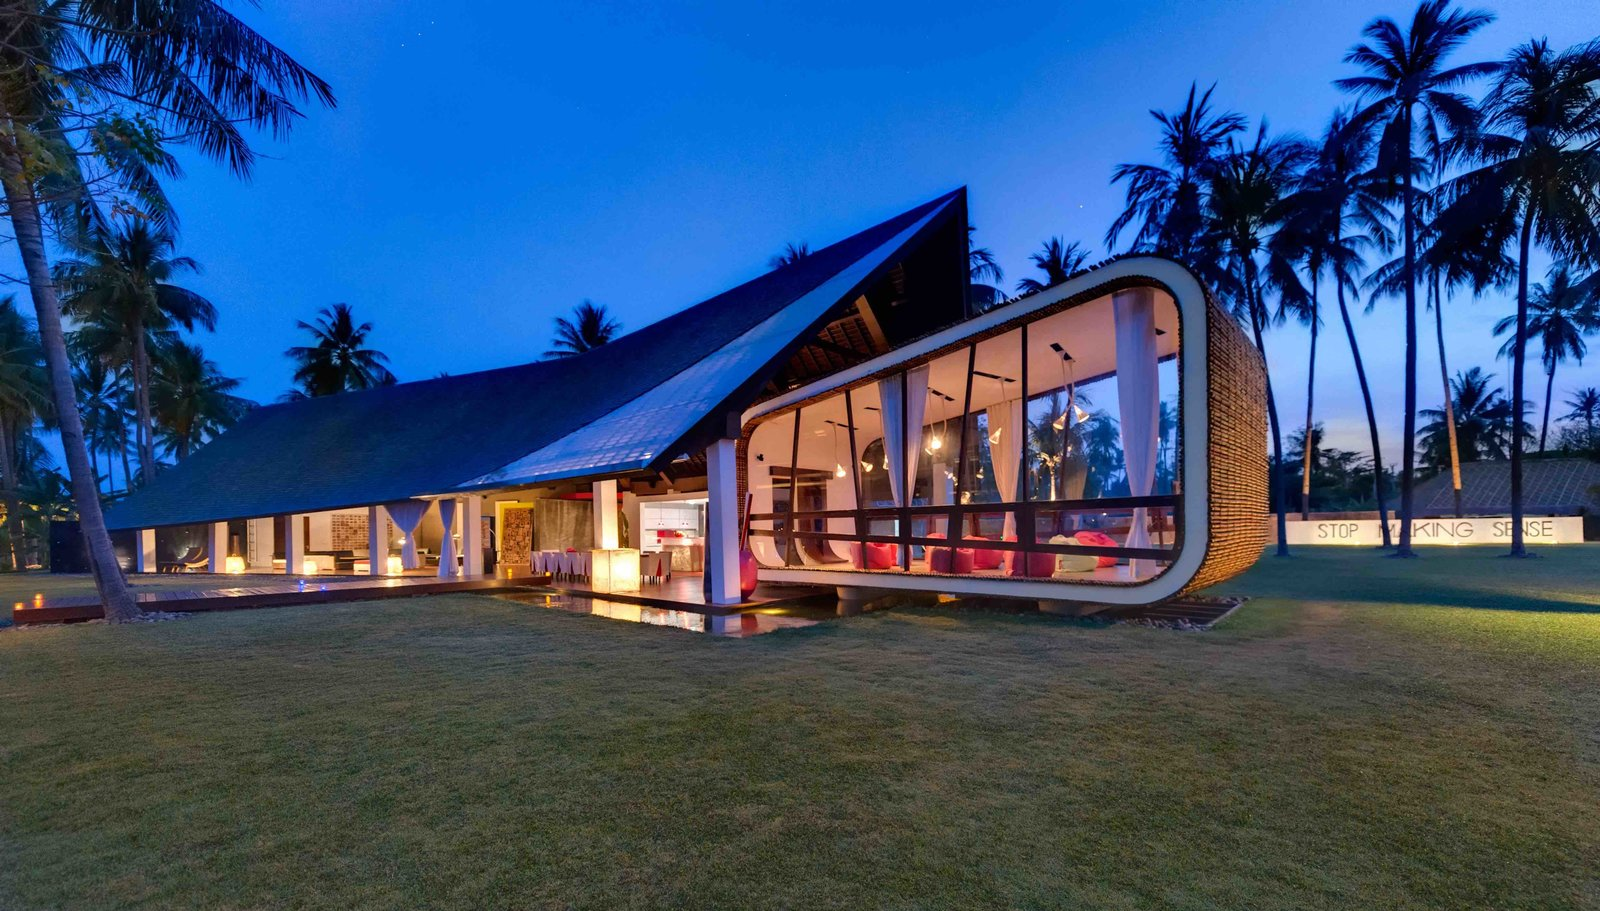 Designed by Canadian architect David Lombardi and set along an almost deserted beach in Lombok, this five bedroom modern architectural gem has a torch-lined timber pathway, and a guesthouse built into a grass covered manmade hill.  Photo 4 of 7 in 7 Incredible Island Villas in Indonesia